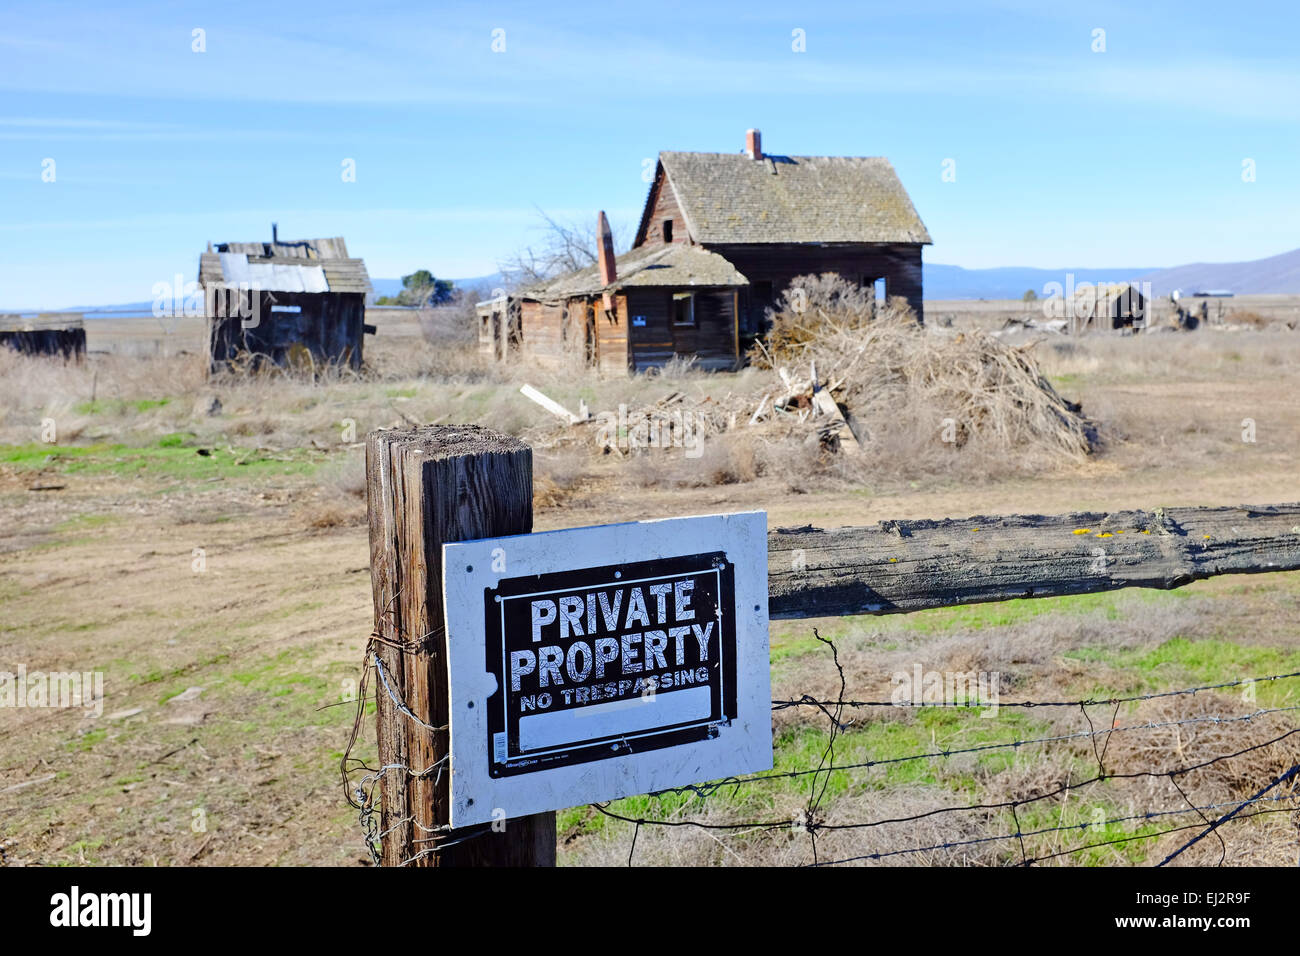 A Depression era farm from the 1930s, long abandoned on the open plains near the Columbia River gorge in Central - Stock Image